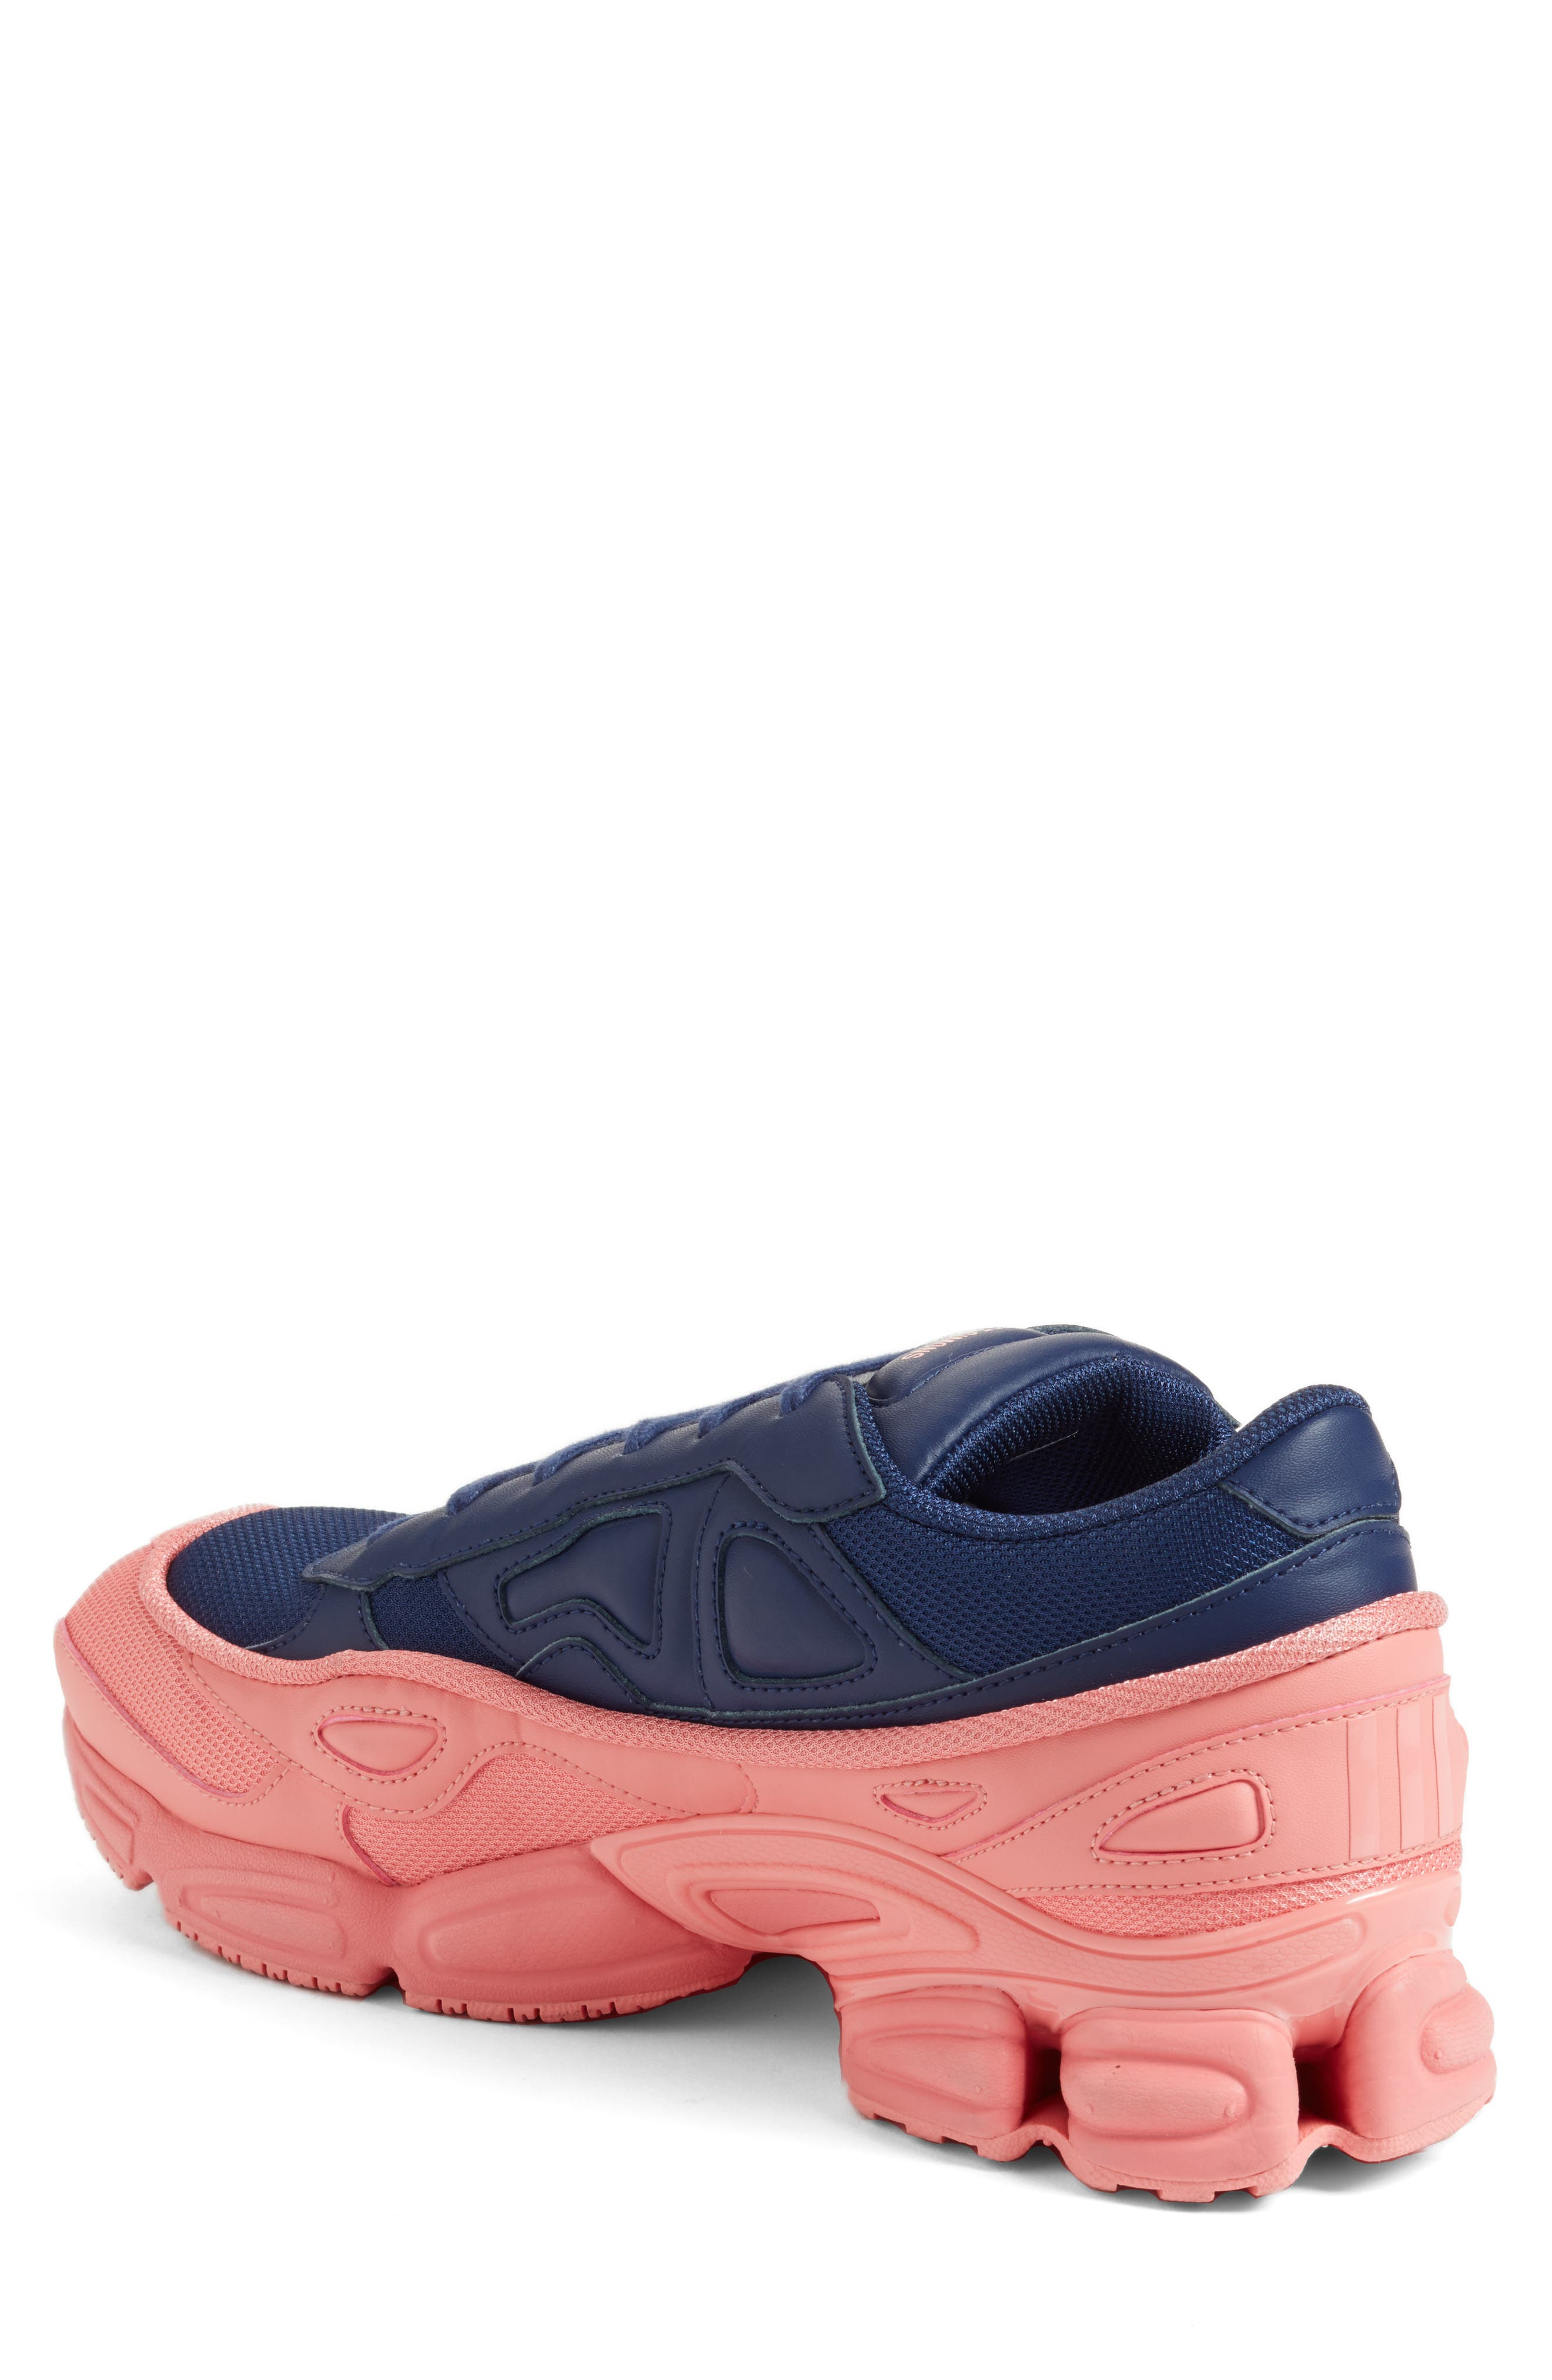 adidas by Raf Simons Ozweego III Sneaker,                             Alternate thumbnail 2, color,                             TACTILE ROSE/ DARK BLUE